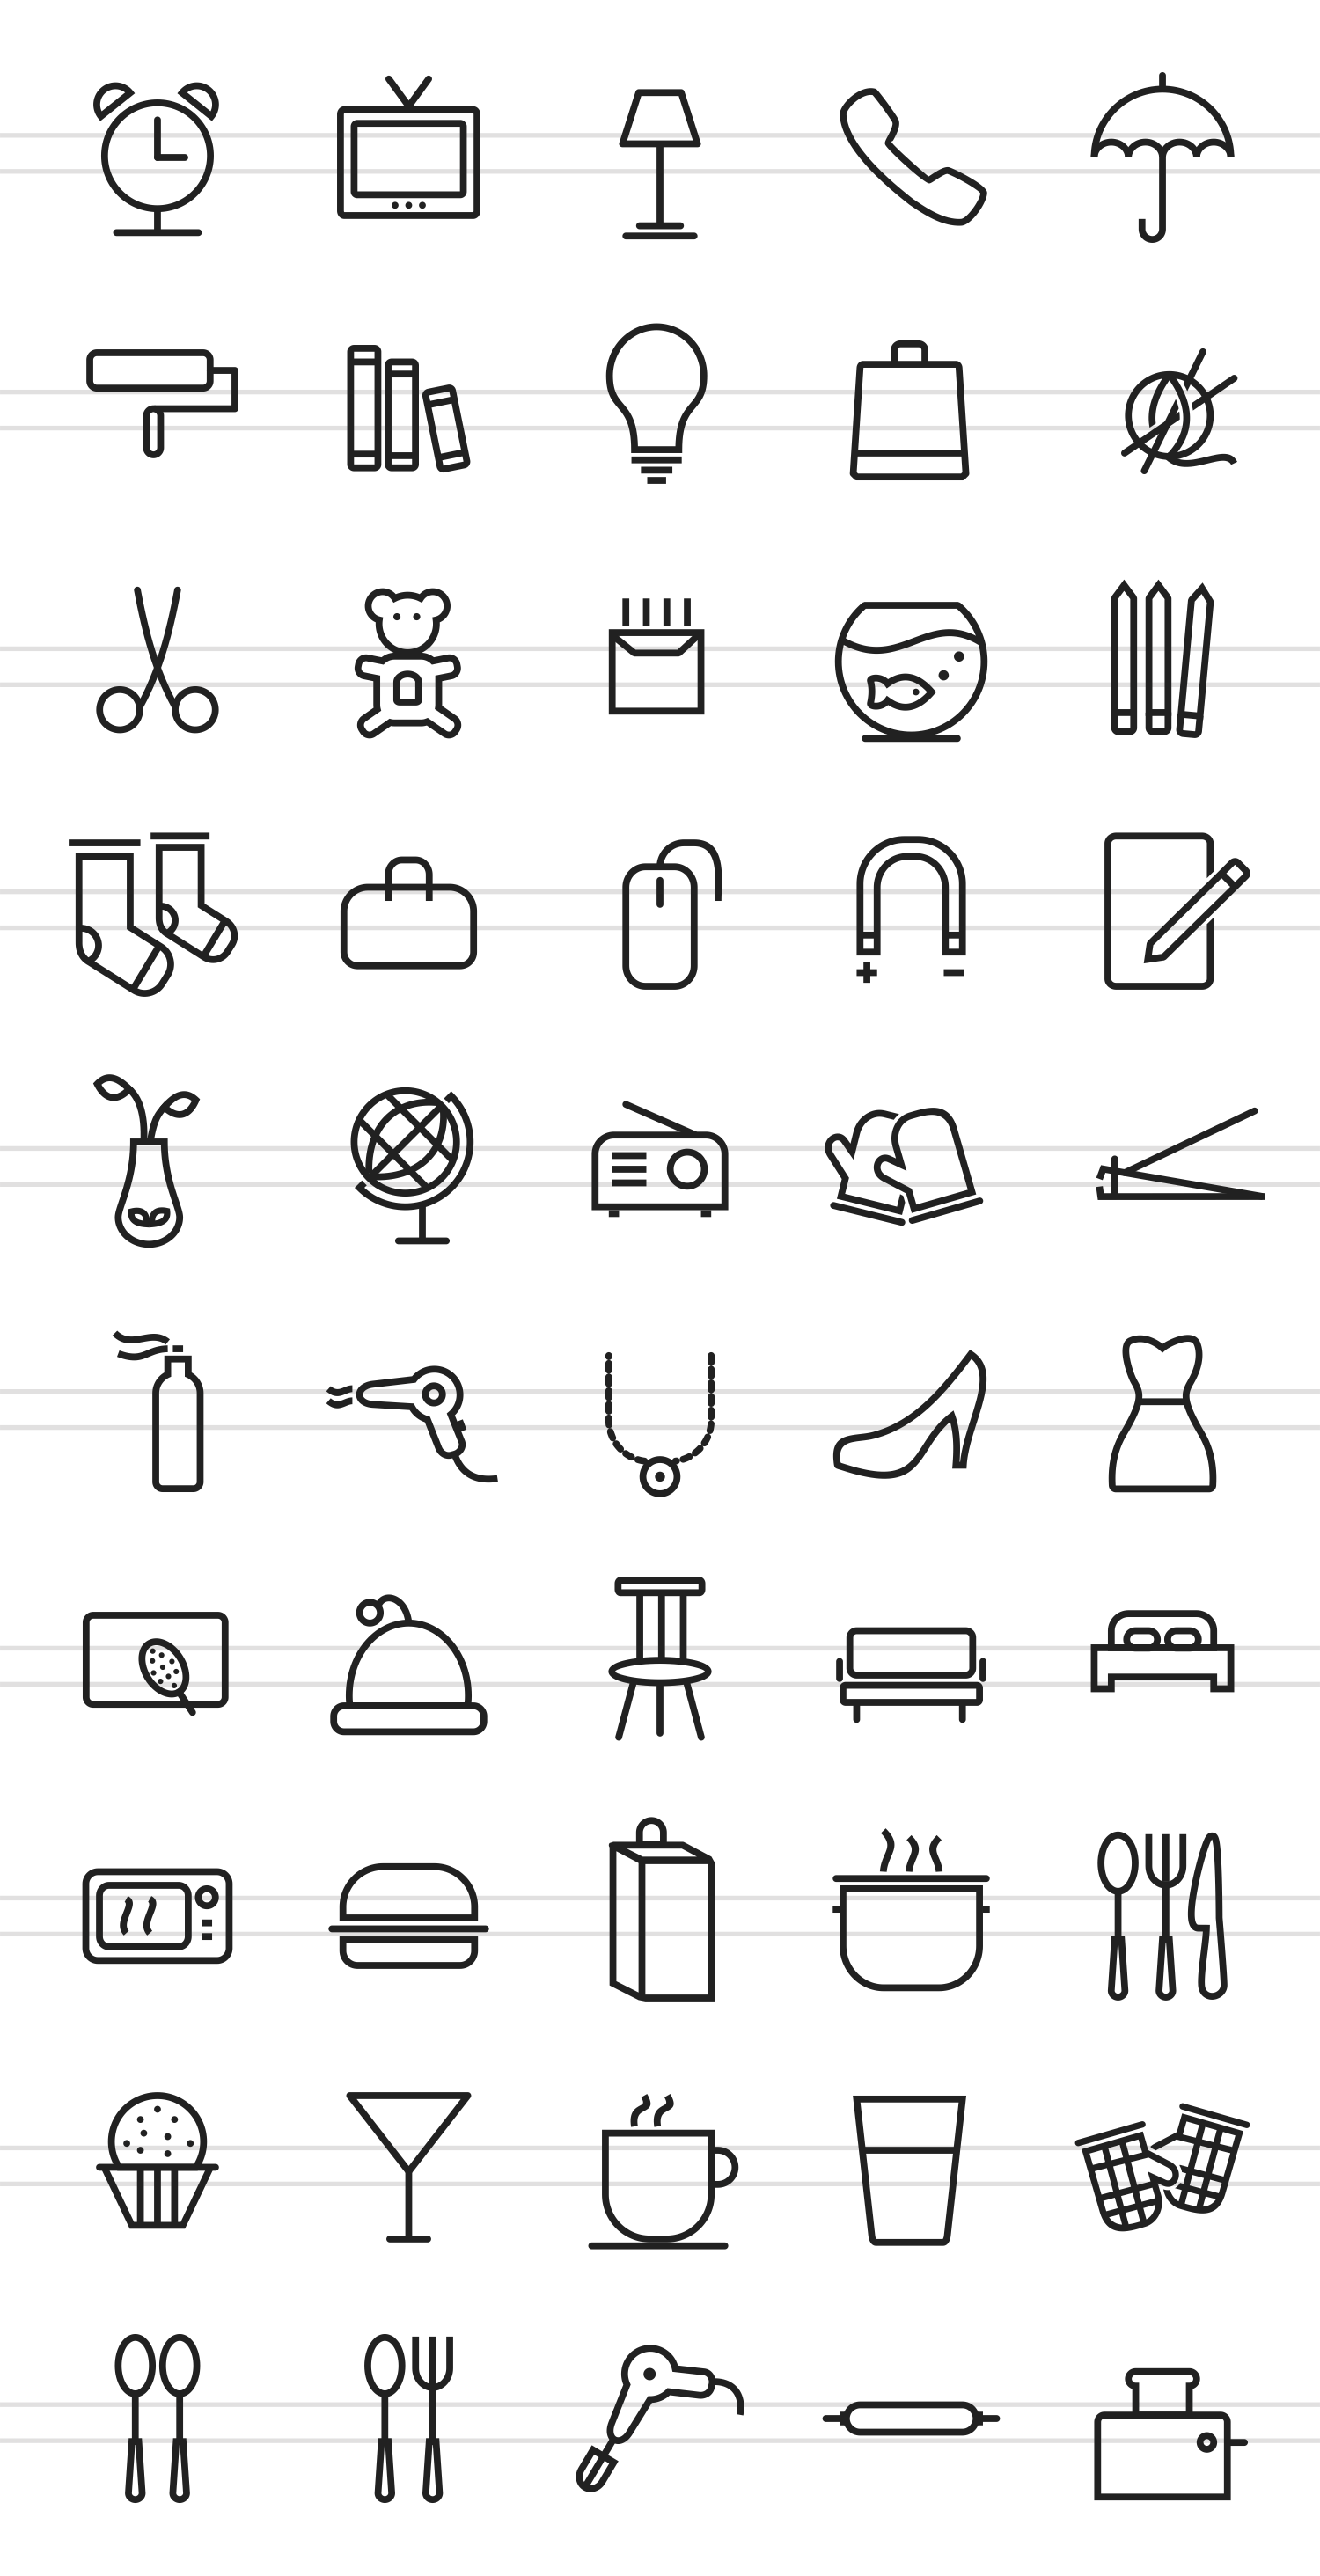 50 Household Objects Line Icons example image 2